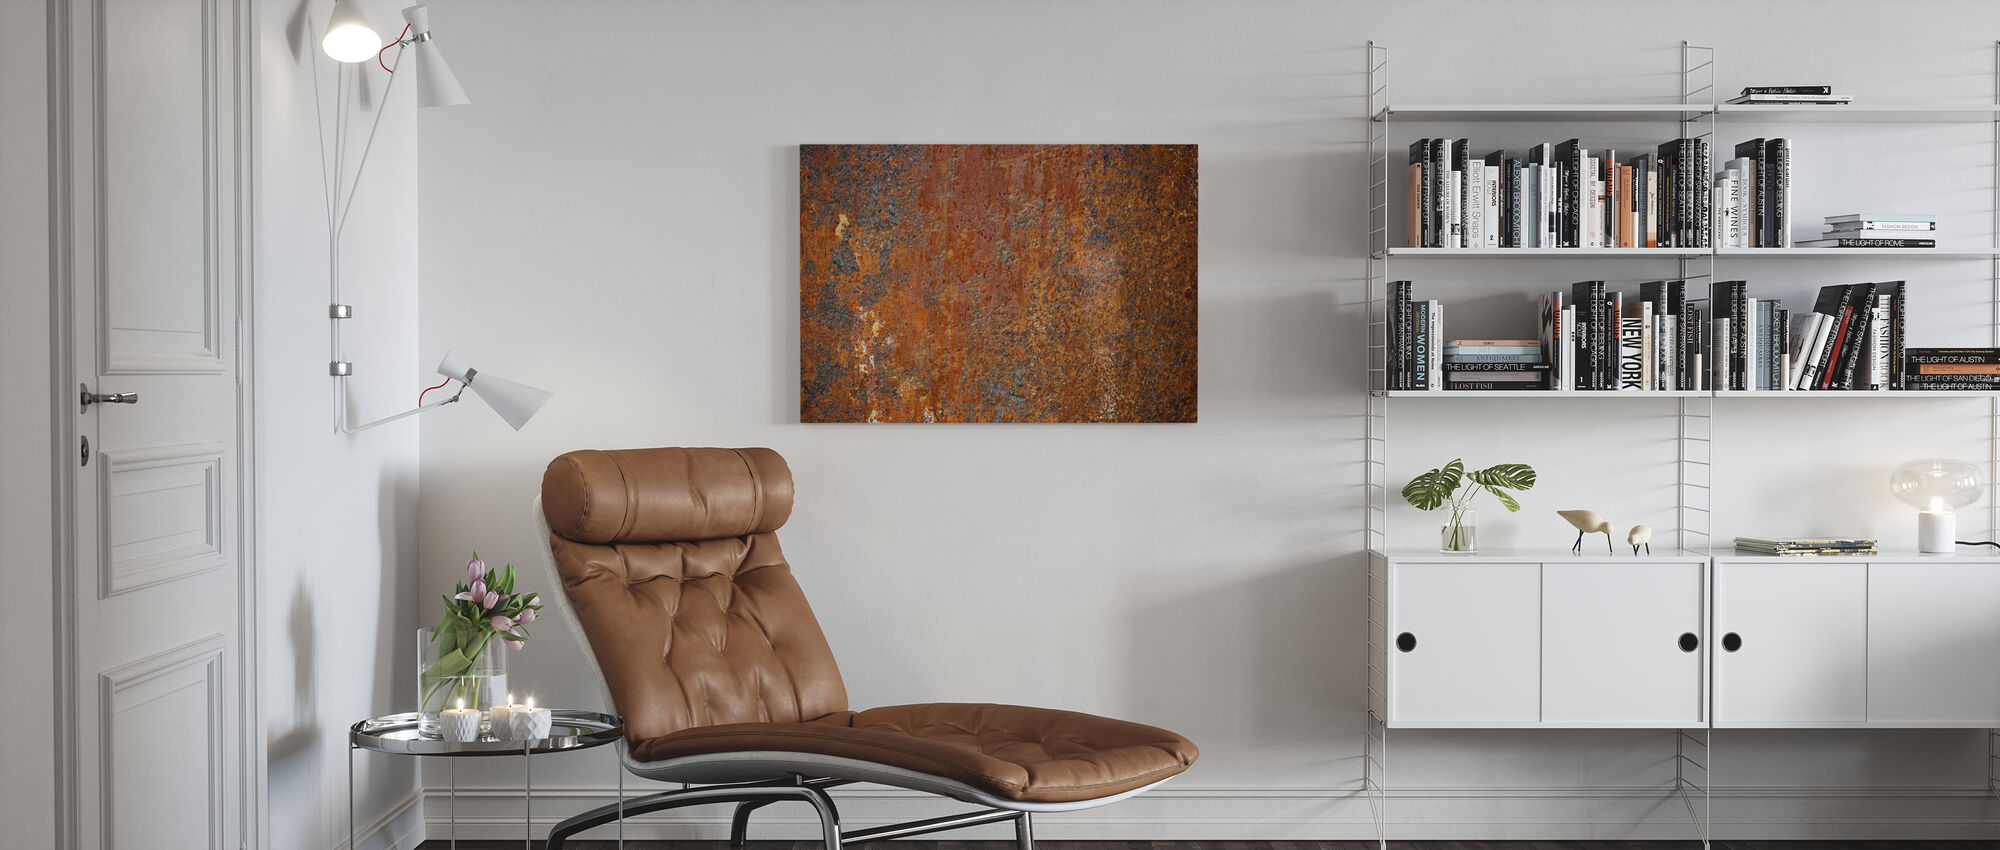 It's Been a While - Canvas print - Living Room